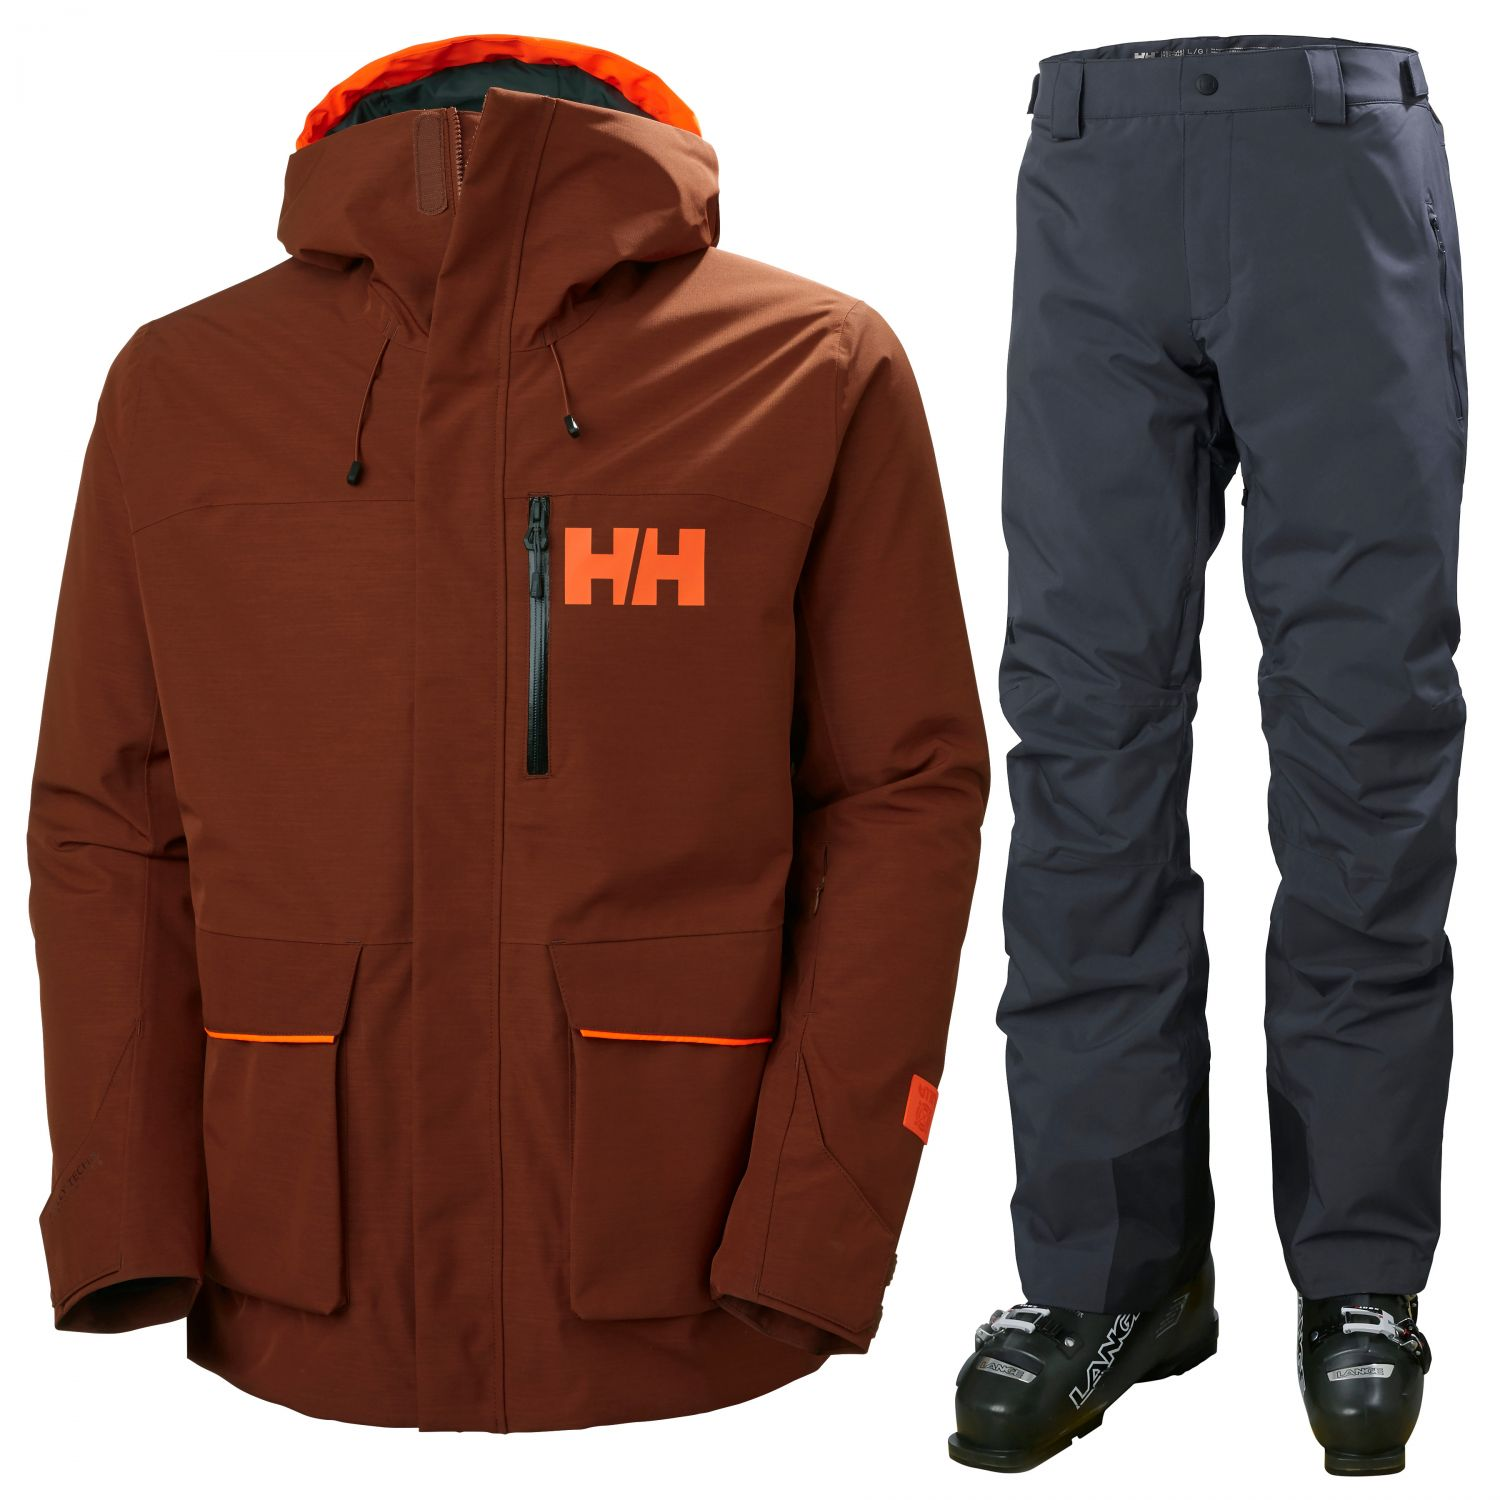 Helly Hansen Kickinghorse/Legendary, Herr, Röd/Svart